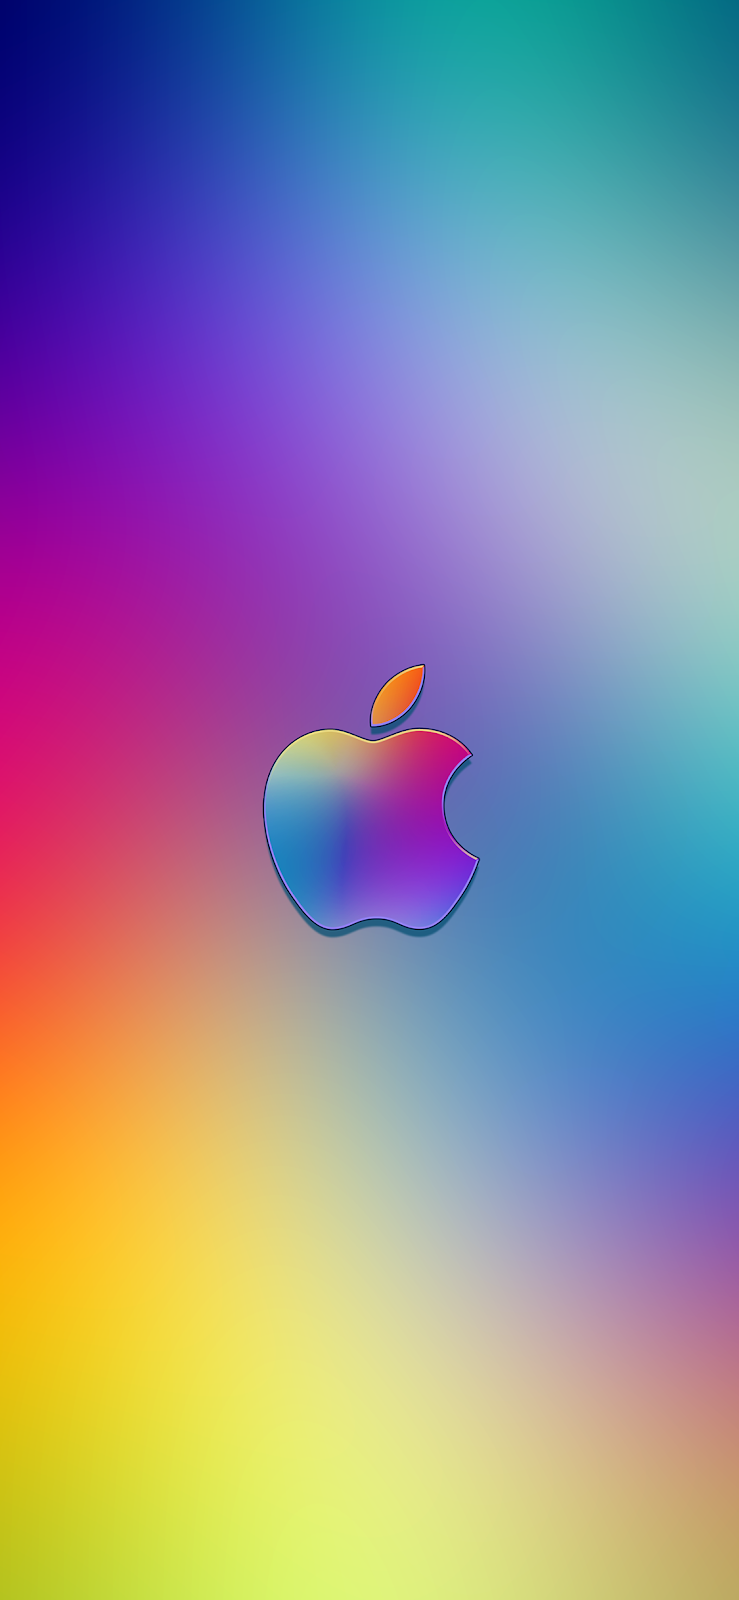 Gradient Apple Logo (iPhone X)